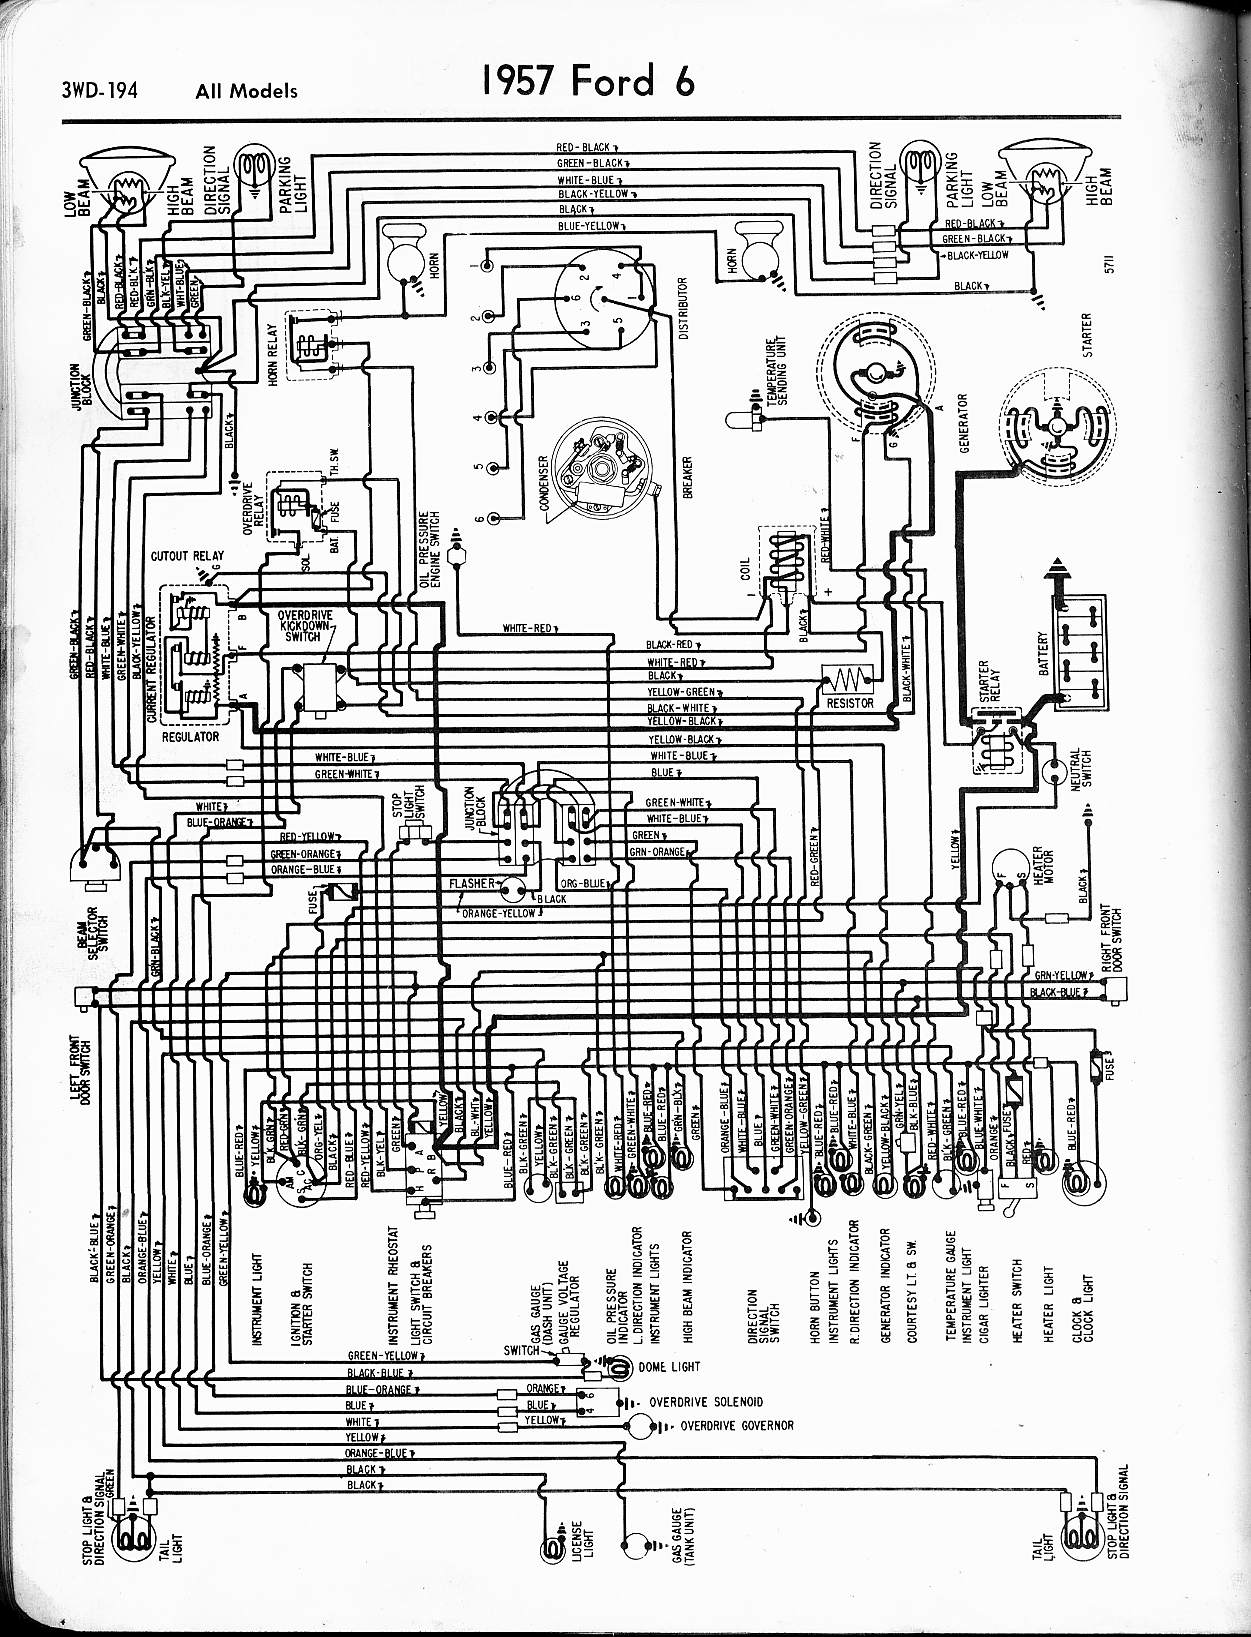 20050 Wiring Diagram Hopkins Auto Electrical